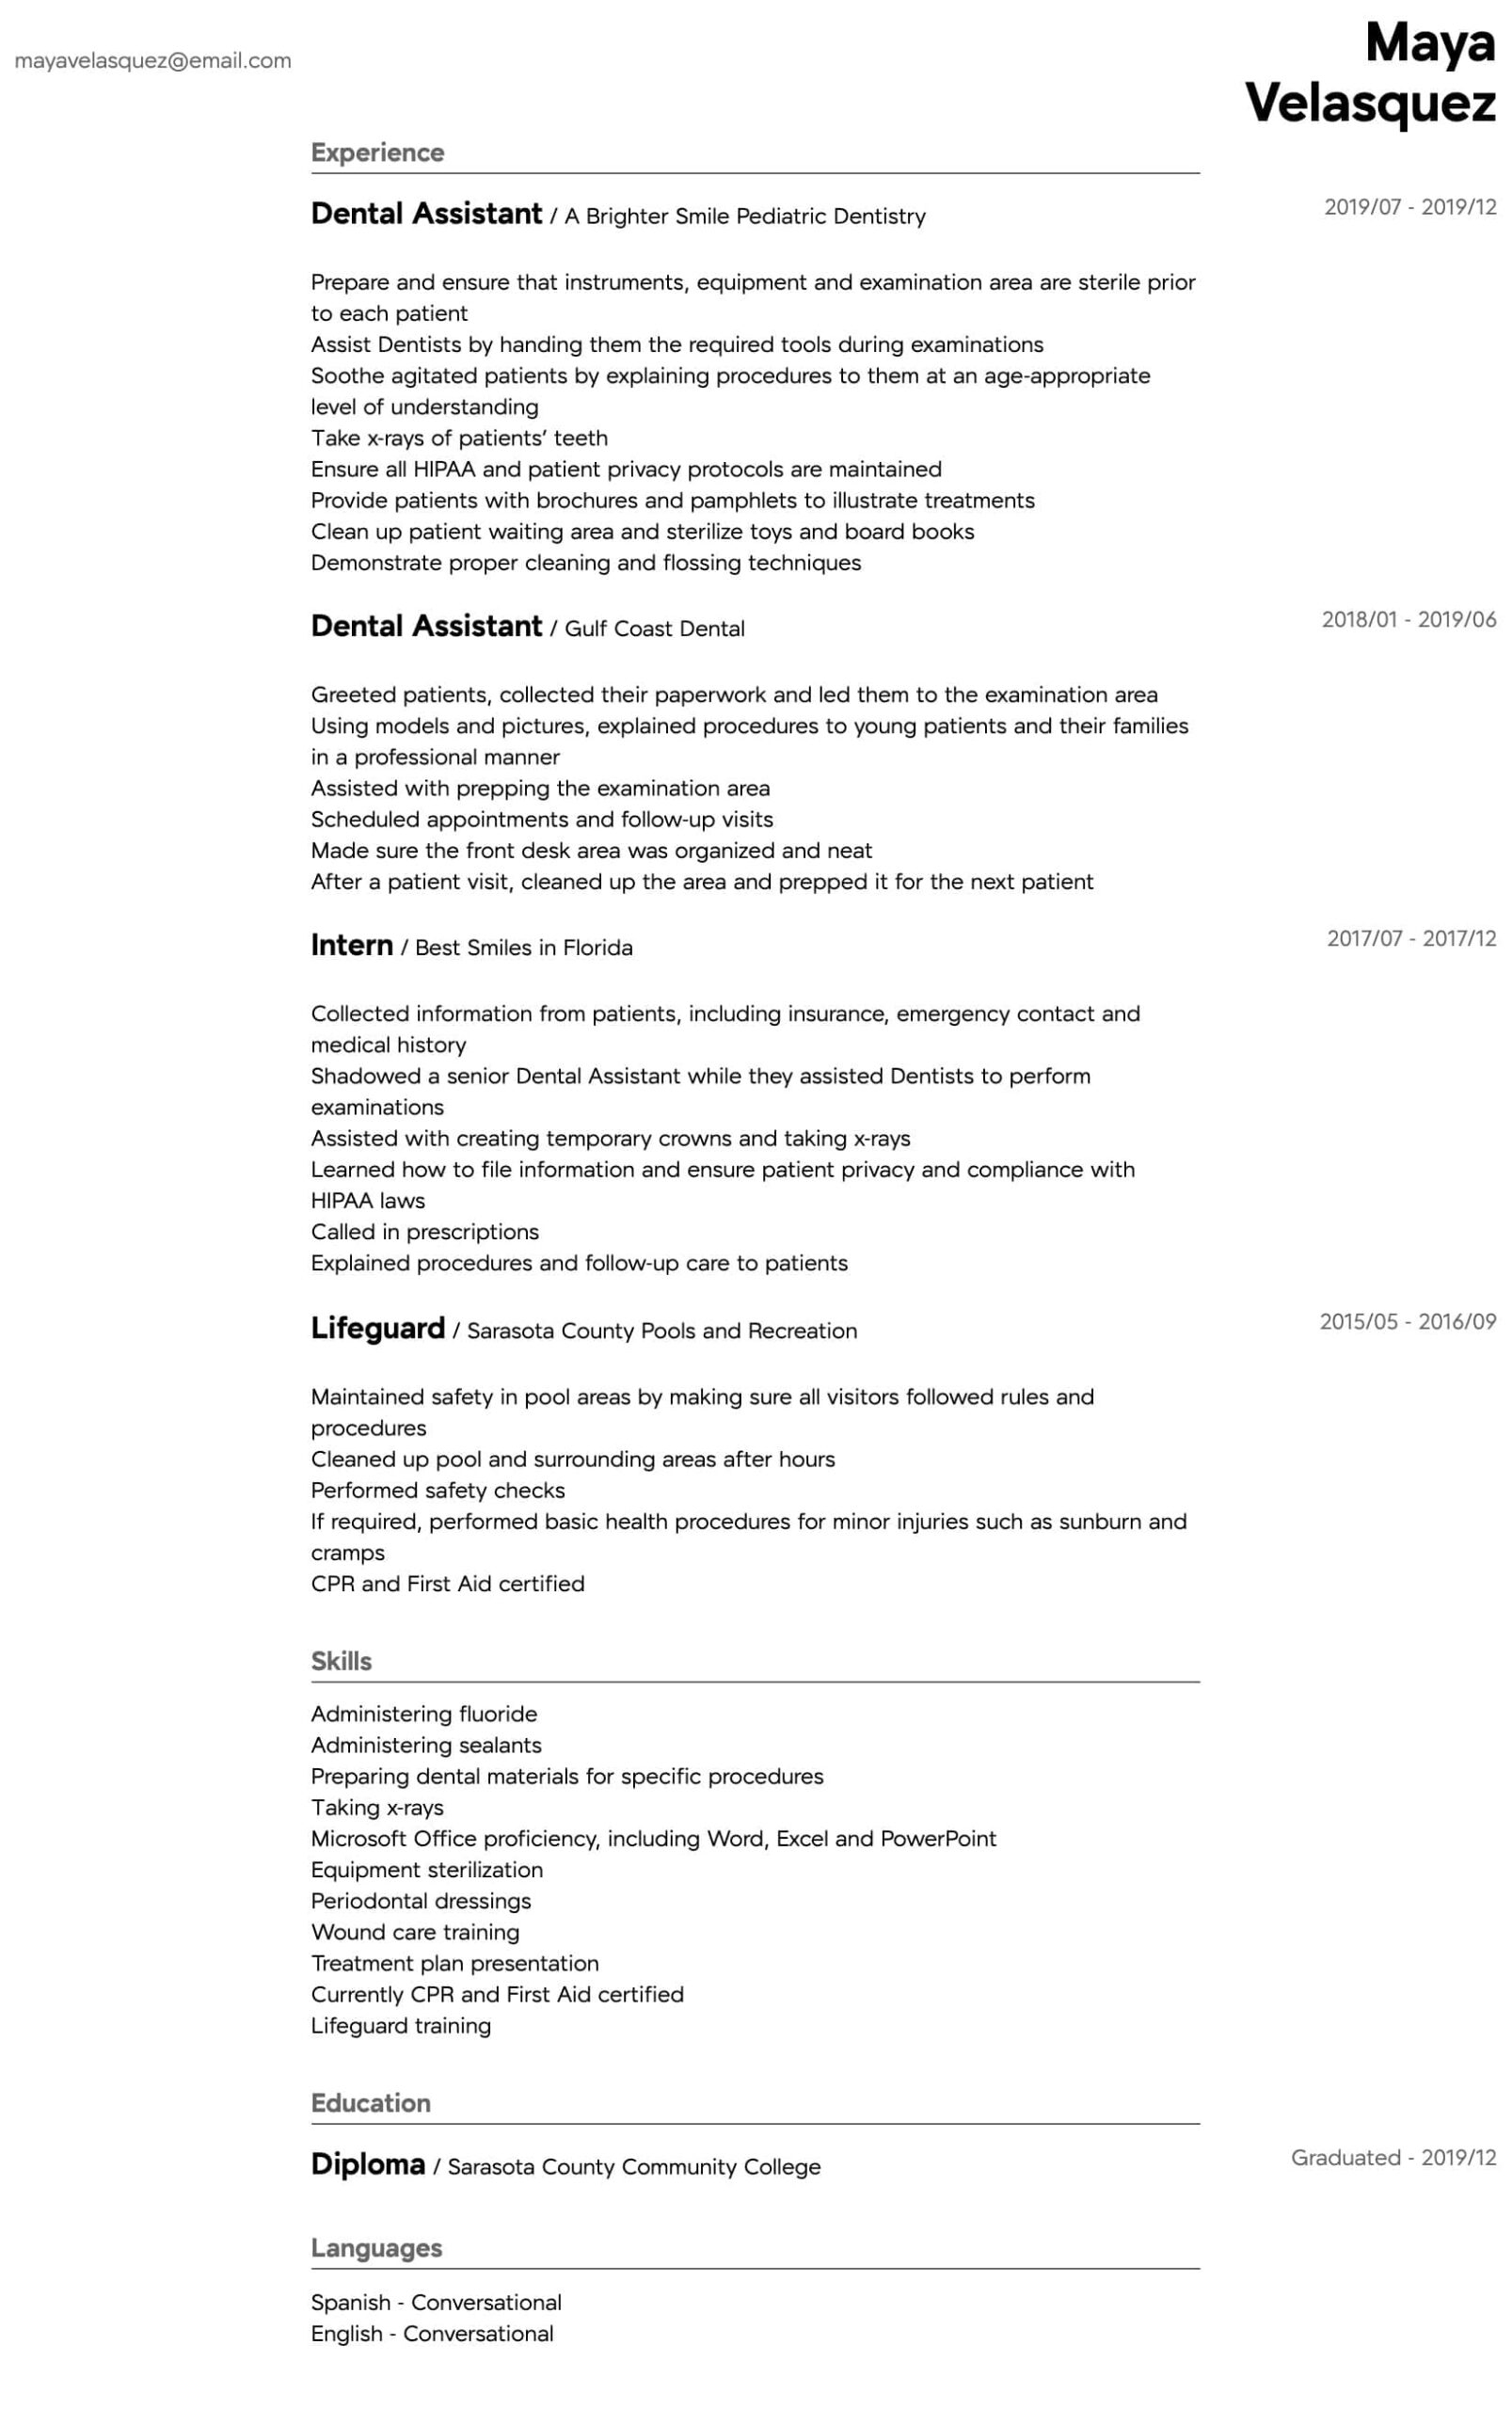 dental assistant resume samples all experience levels intermediate genius free when you Resume Experience Dental Assistant Resume